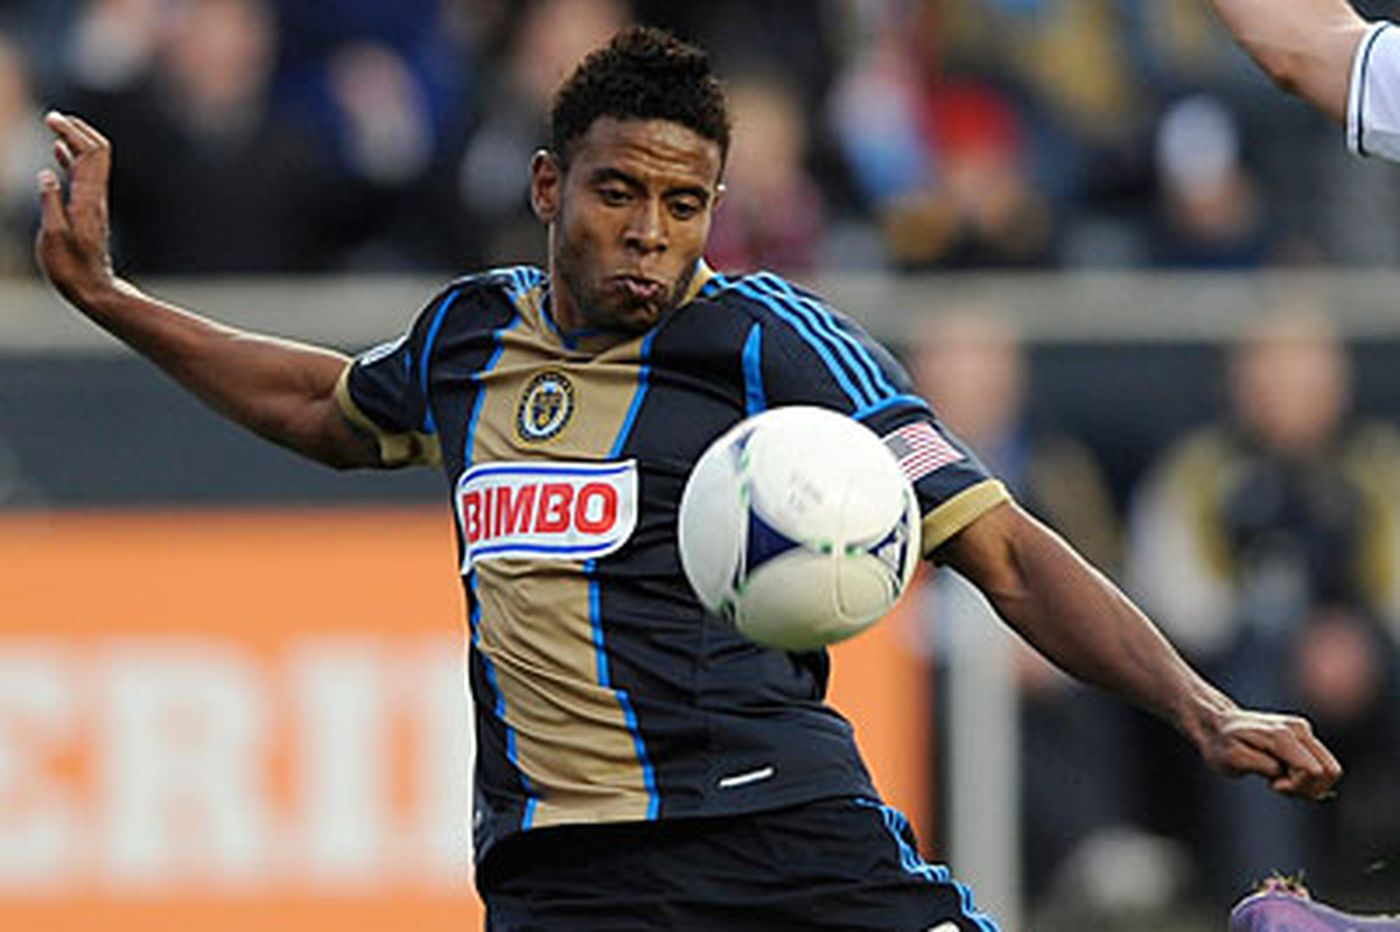 Marc Narducci: An eventful day for the Union, on and off field